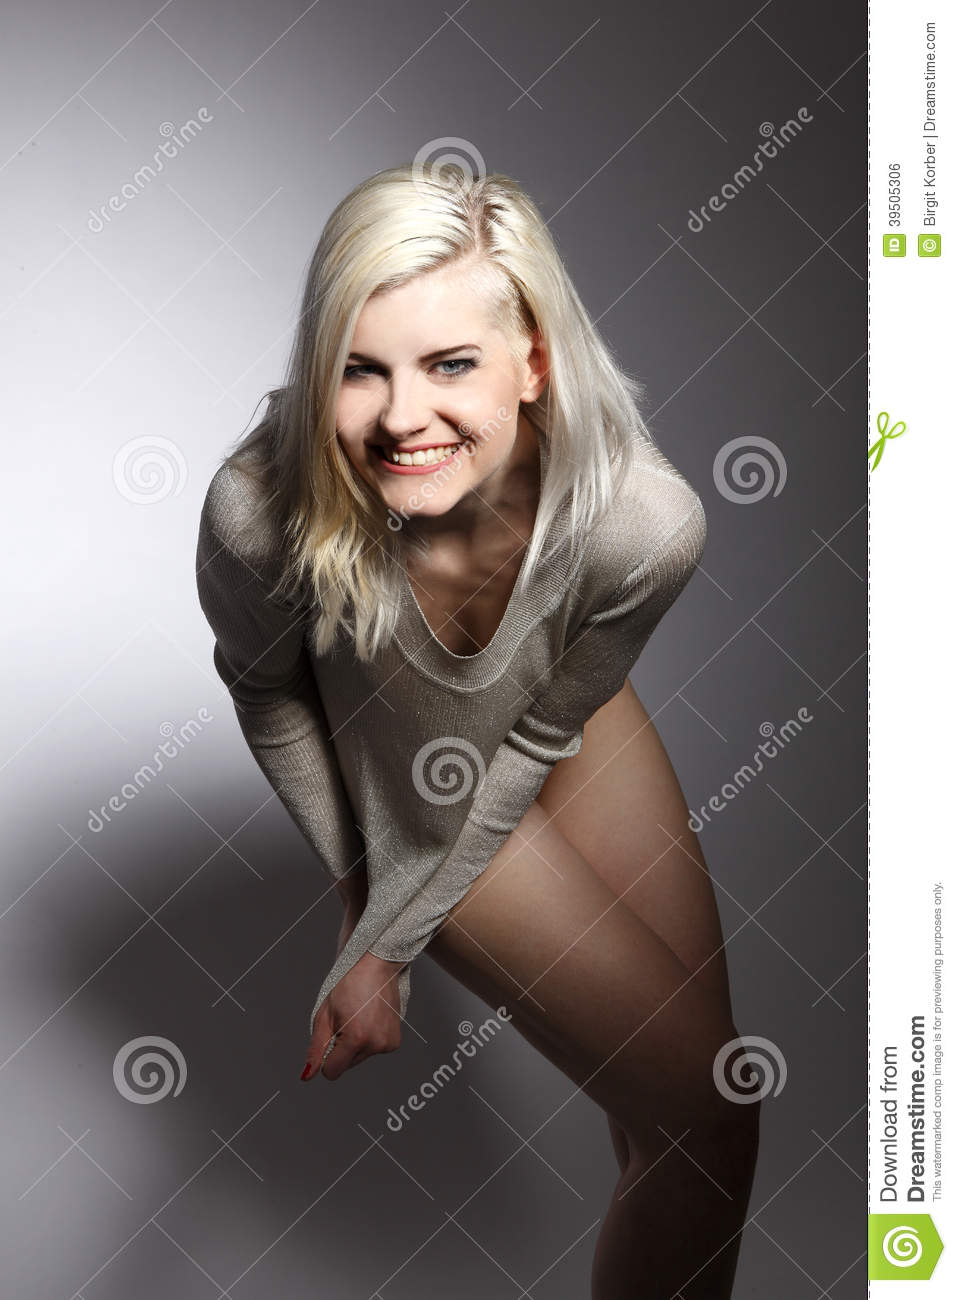 Young blonde woman wearing beige sweater